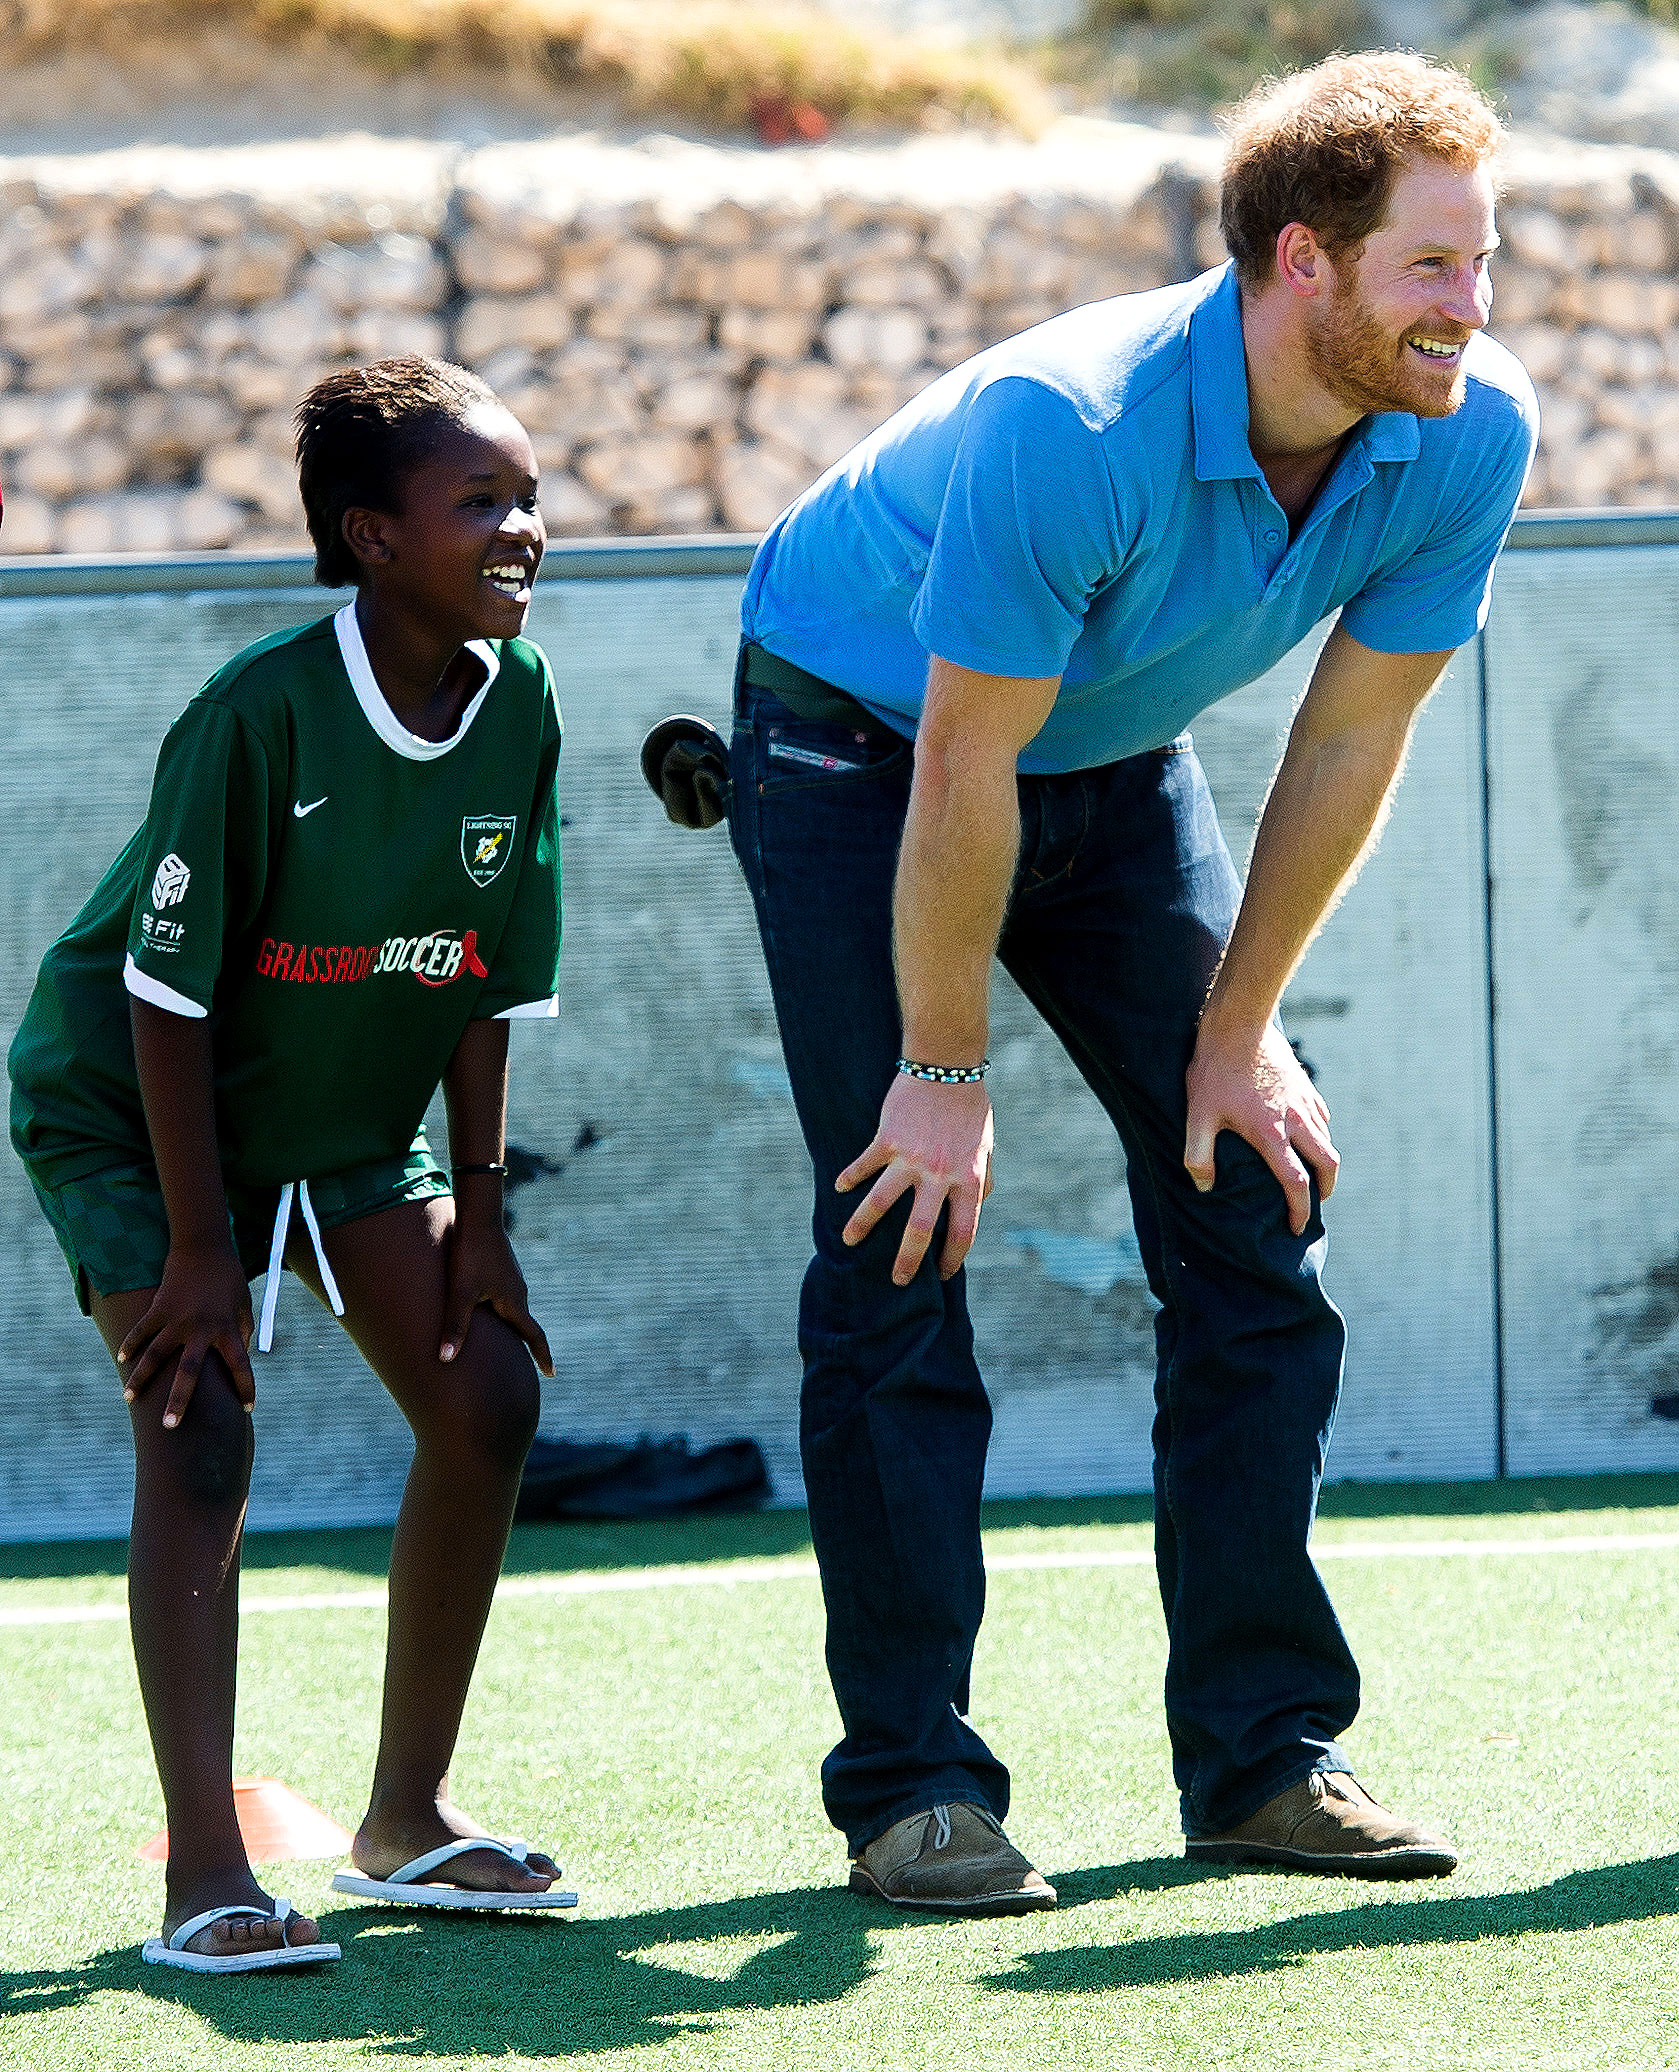 Prince Harry - The royal (in Cape Town, South Africa, in November 2015) practiced American soccer alongside Football For Hope Centre attendees.